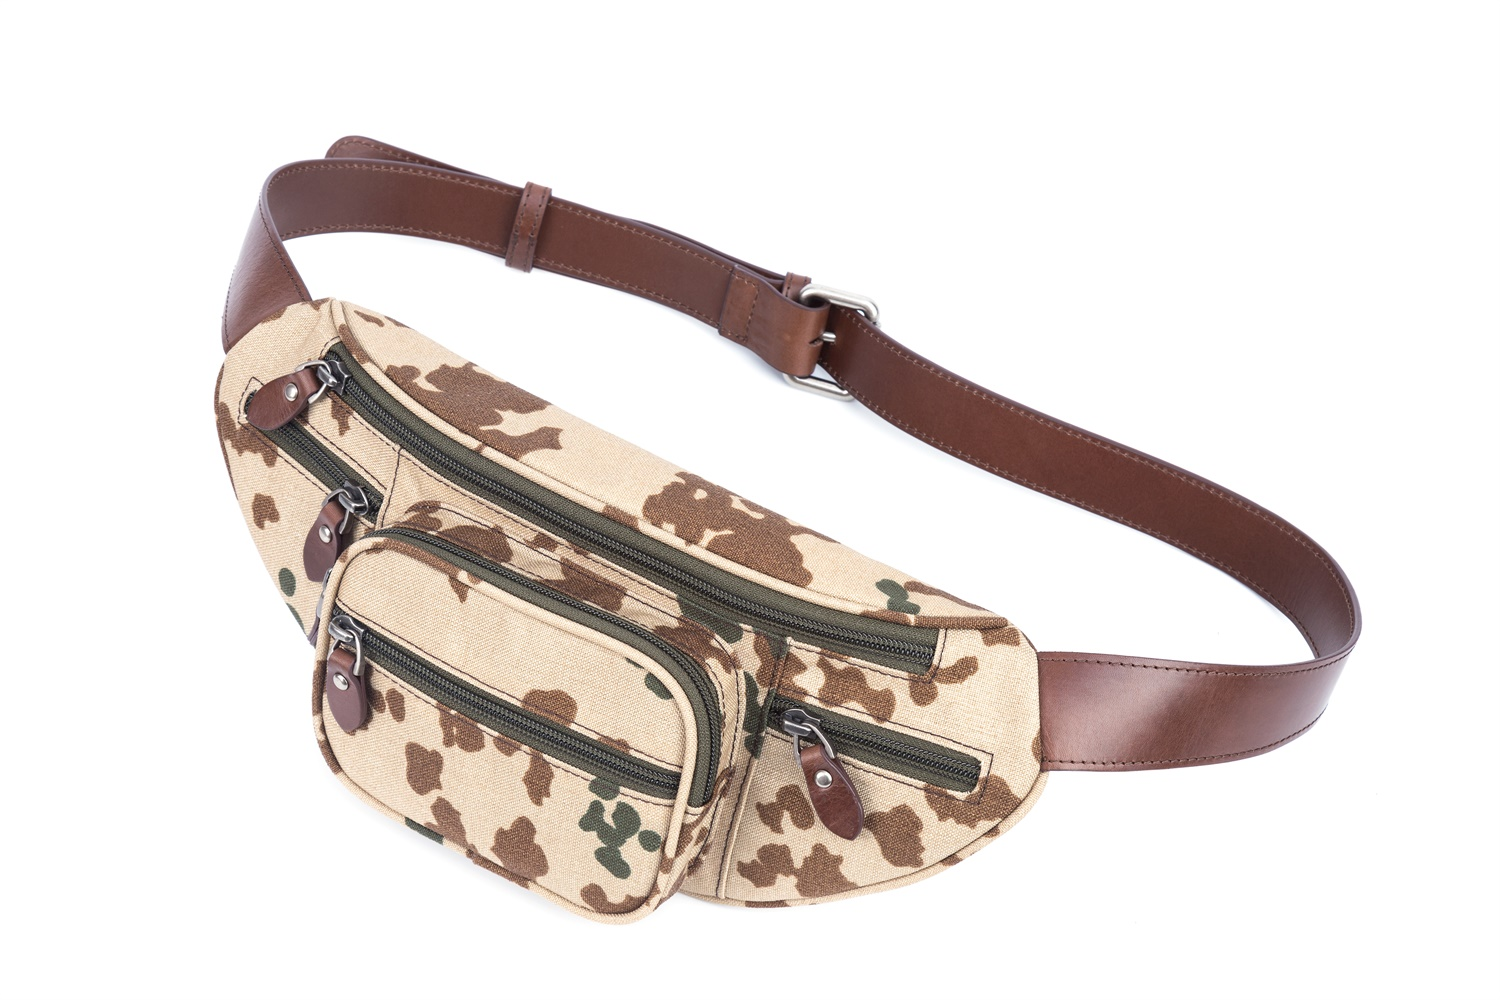 GF bags-Body Bag Genuine Leather Wax Leather Strap Camouflage Nylon Pocket-gaofeng Bags-1